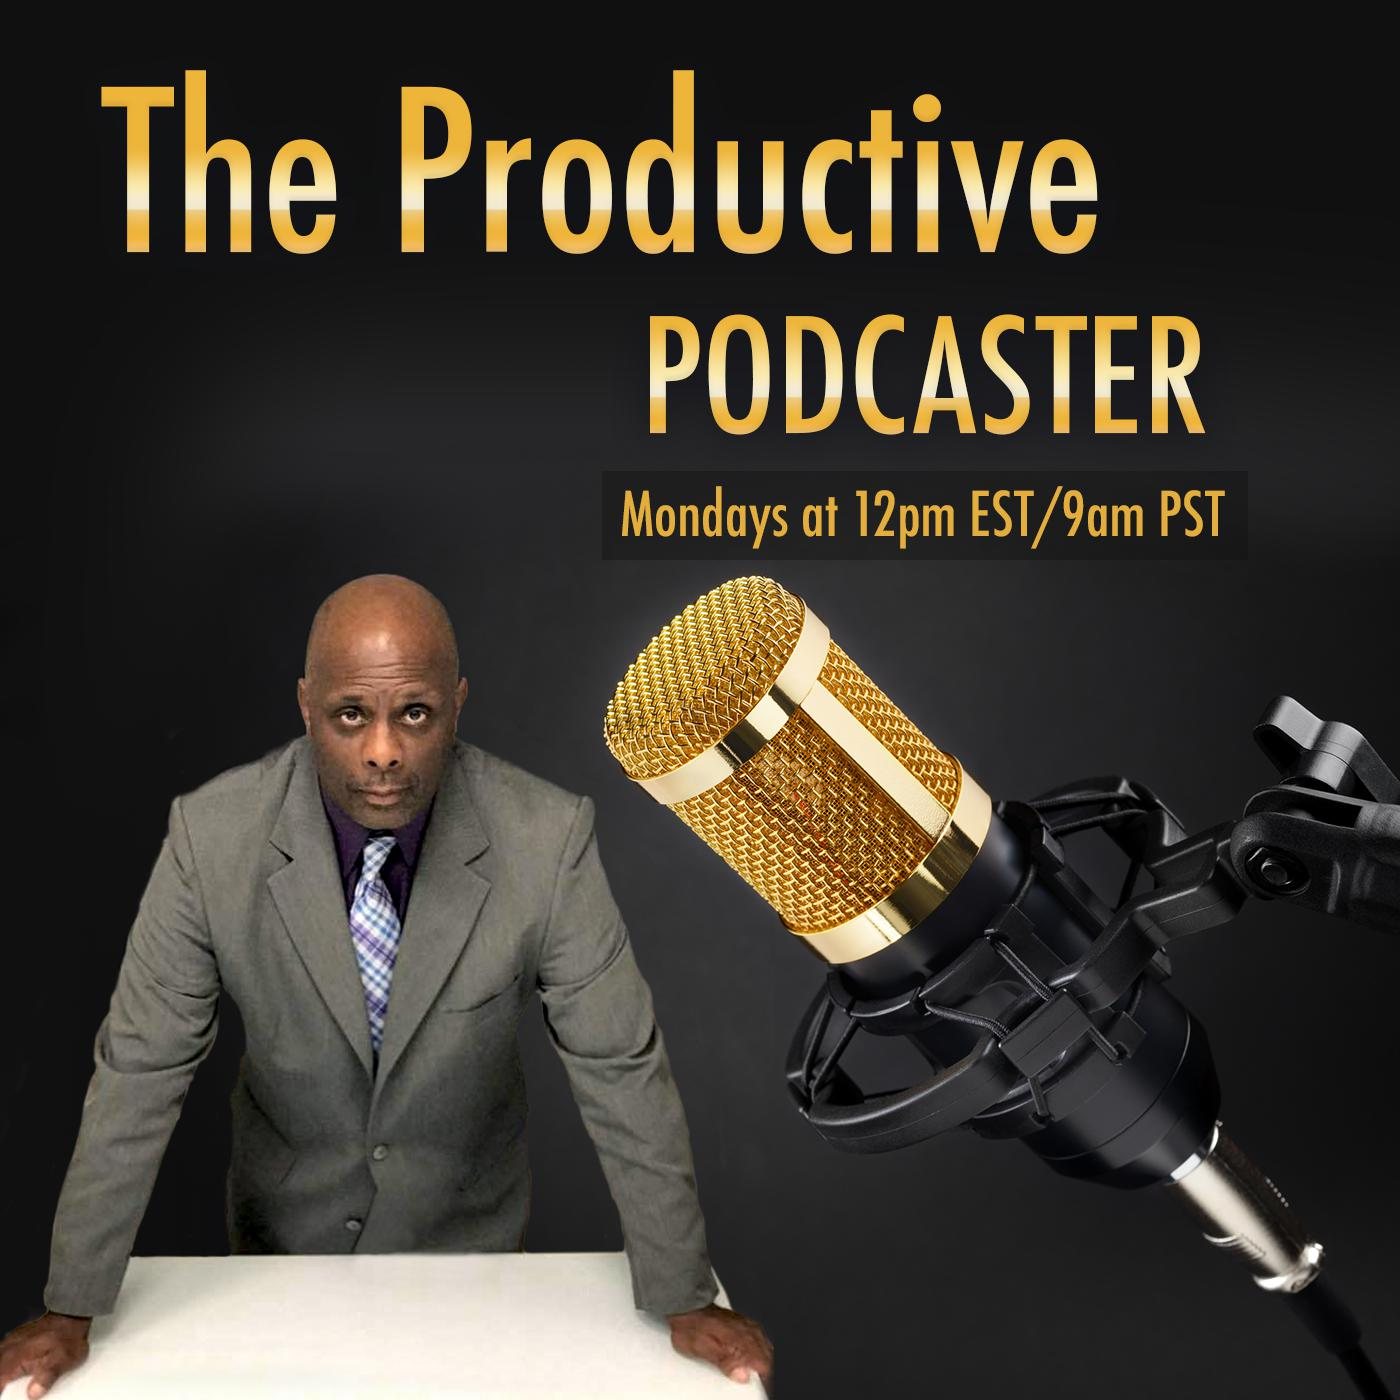 The Productive Podcaster